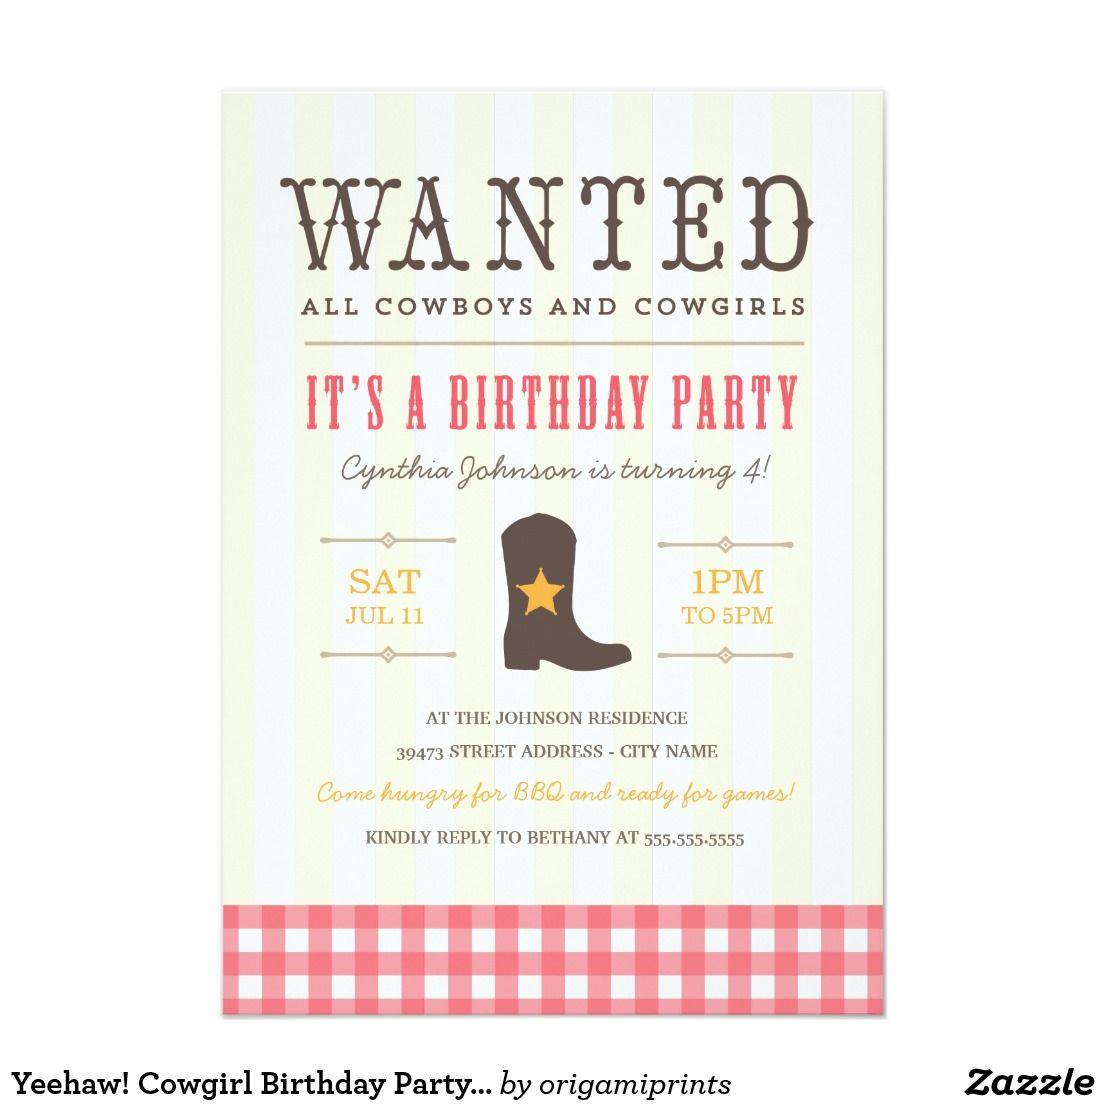 Yeehaw! Cowgirl Birthday Party Invitation | Mom and Kids Stuffs and ...